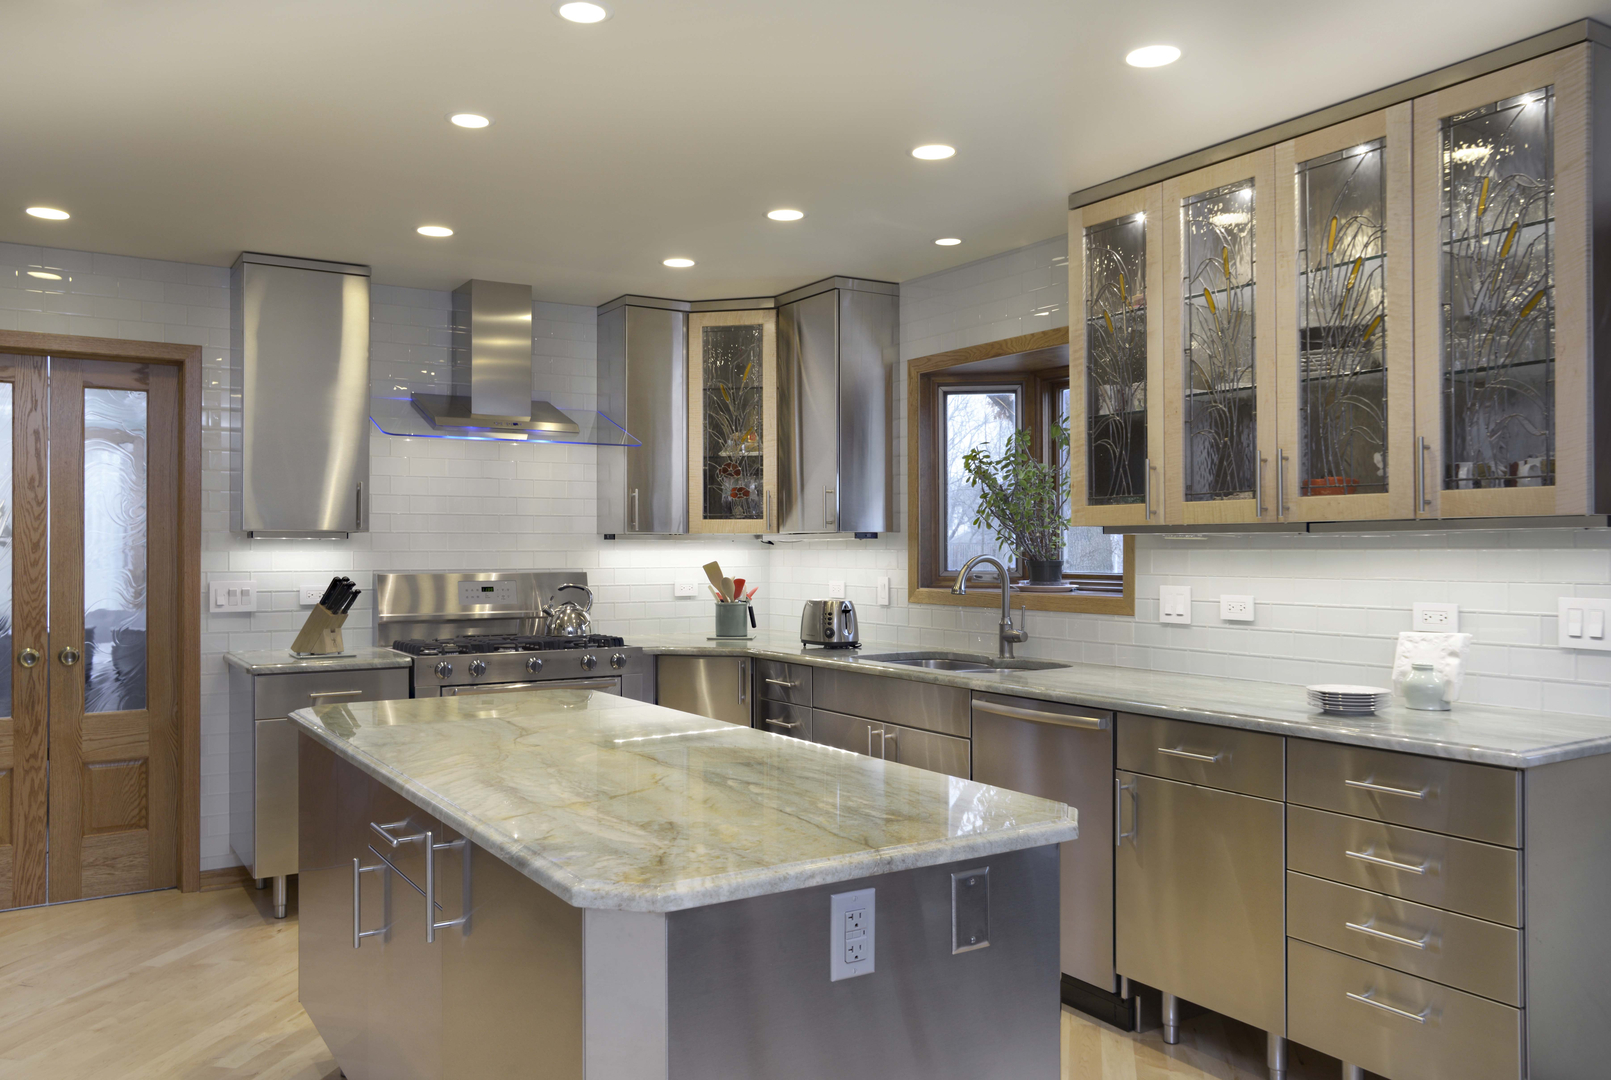 Stainless Steel Cabinets And Countertops Stainless Steel Kitchen Cabinets Concept Minimalist